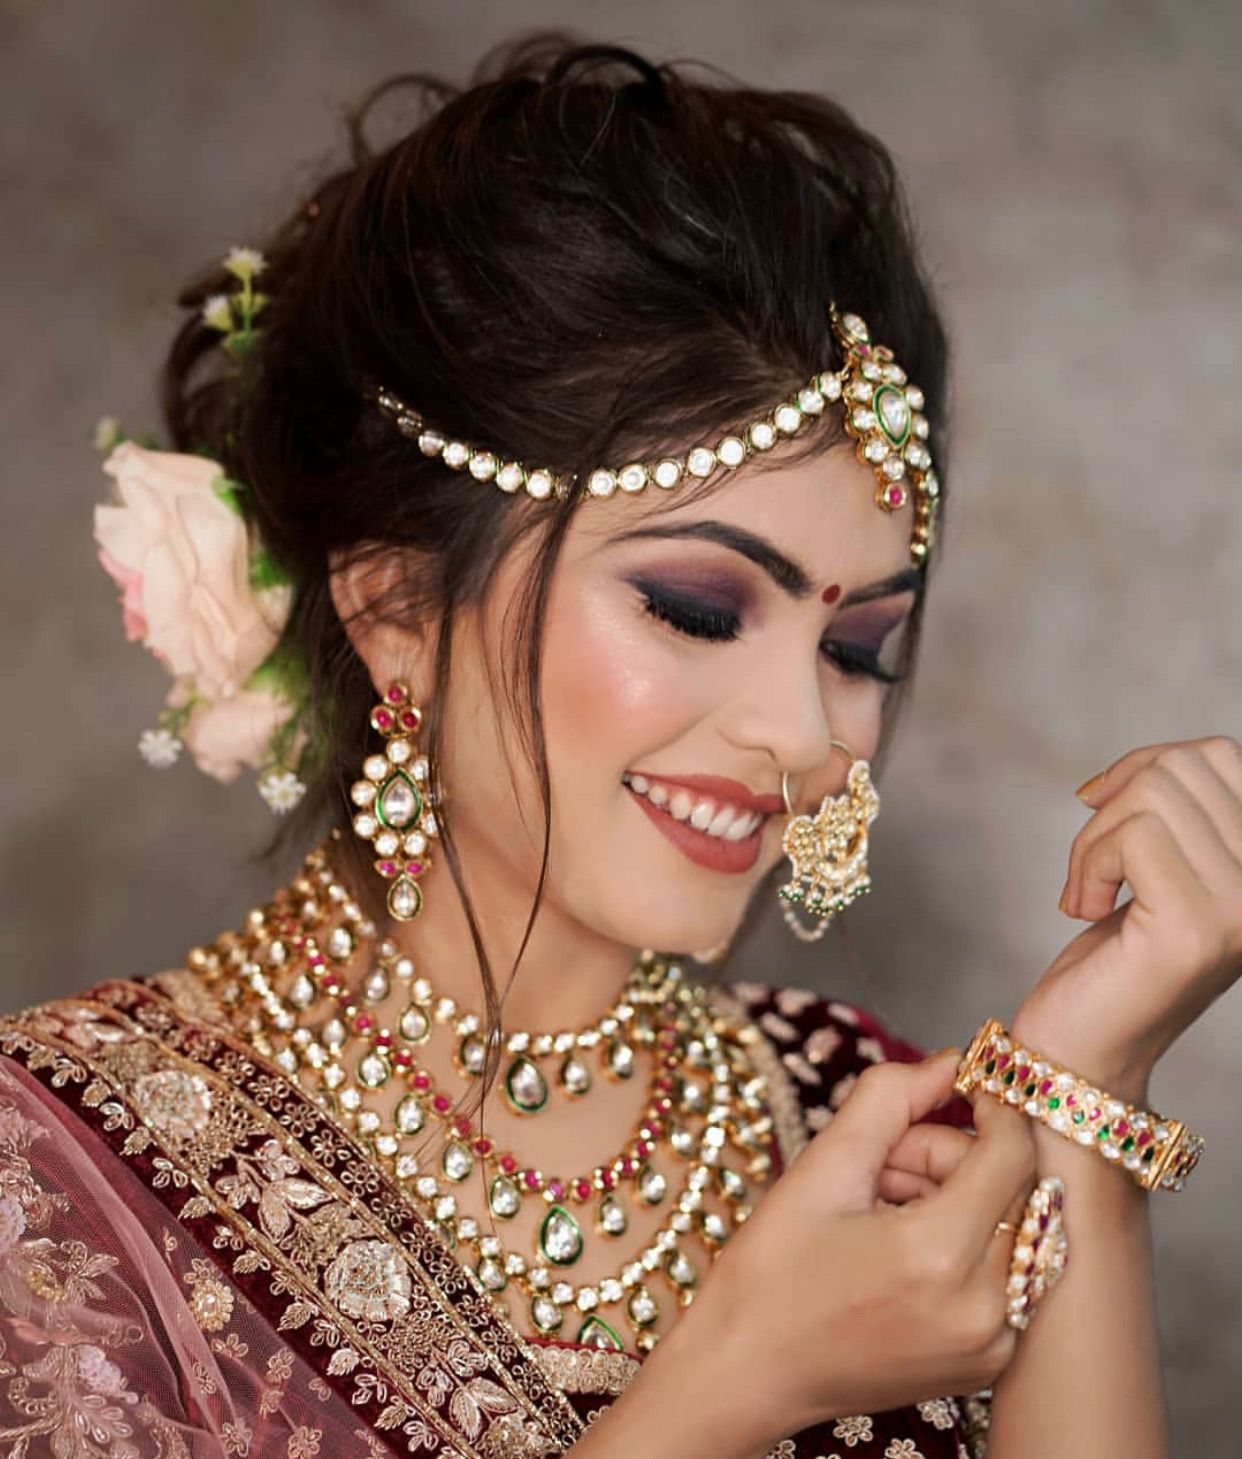 pin by mona bhati on bride dress in 2019 | bridal makeup